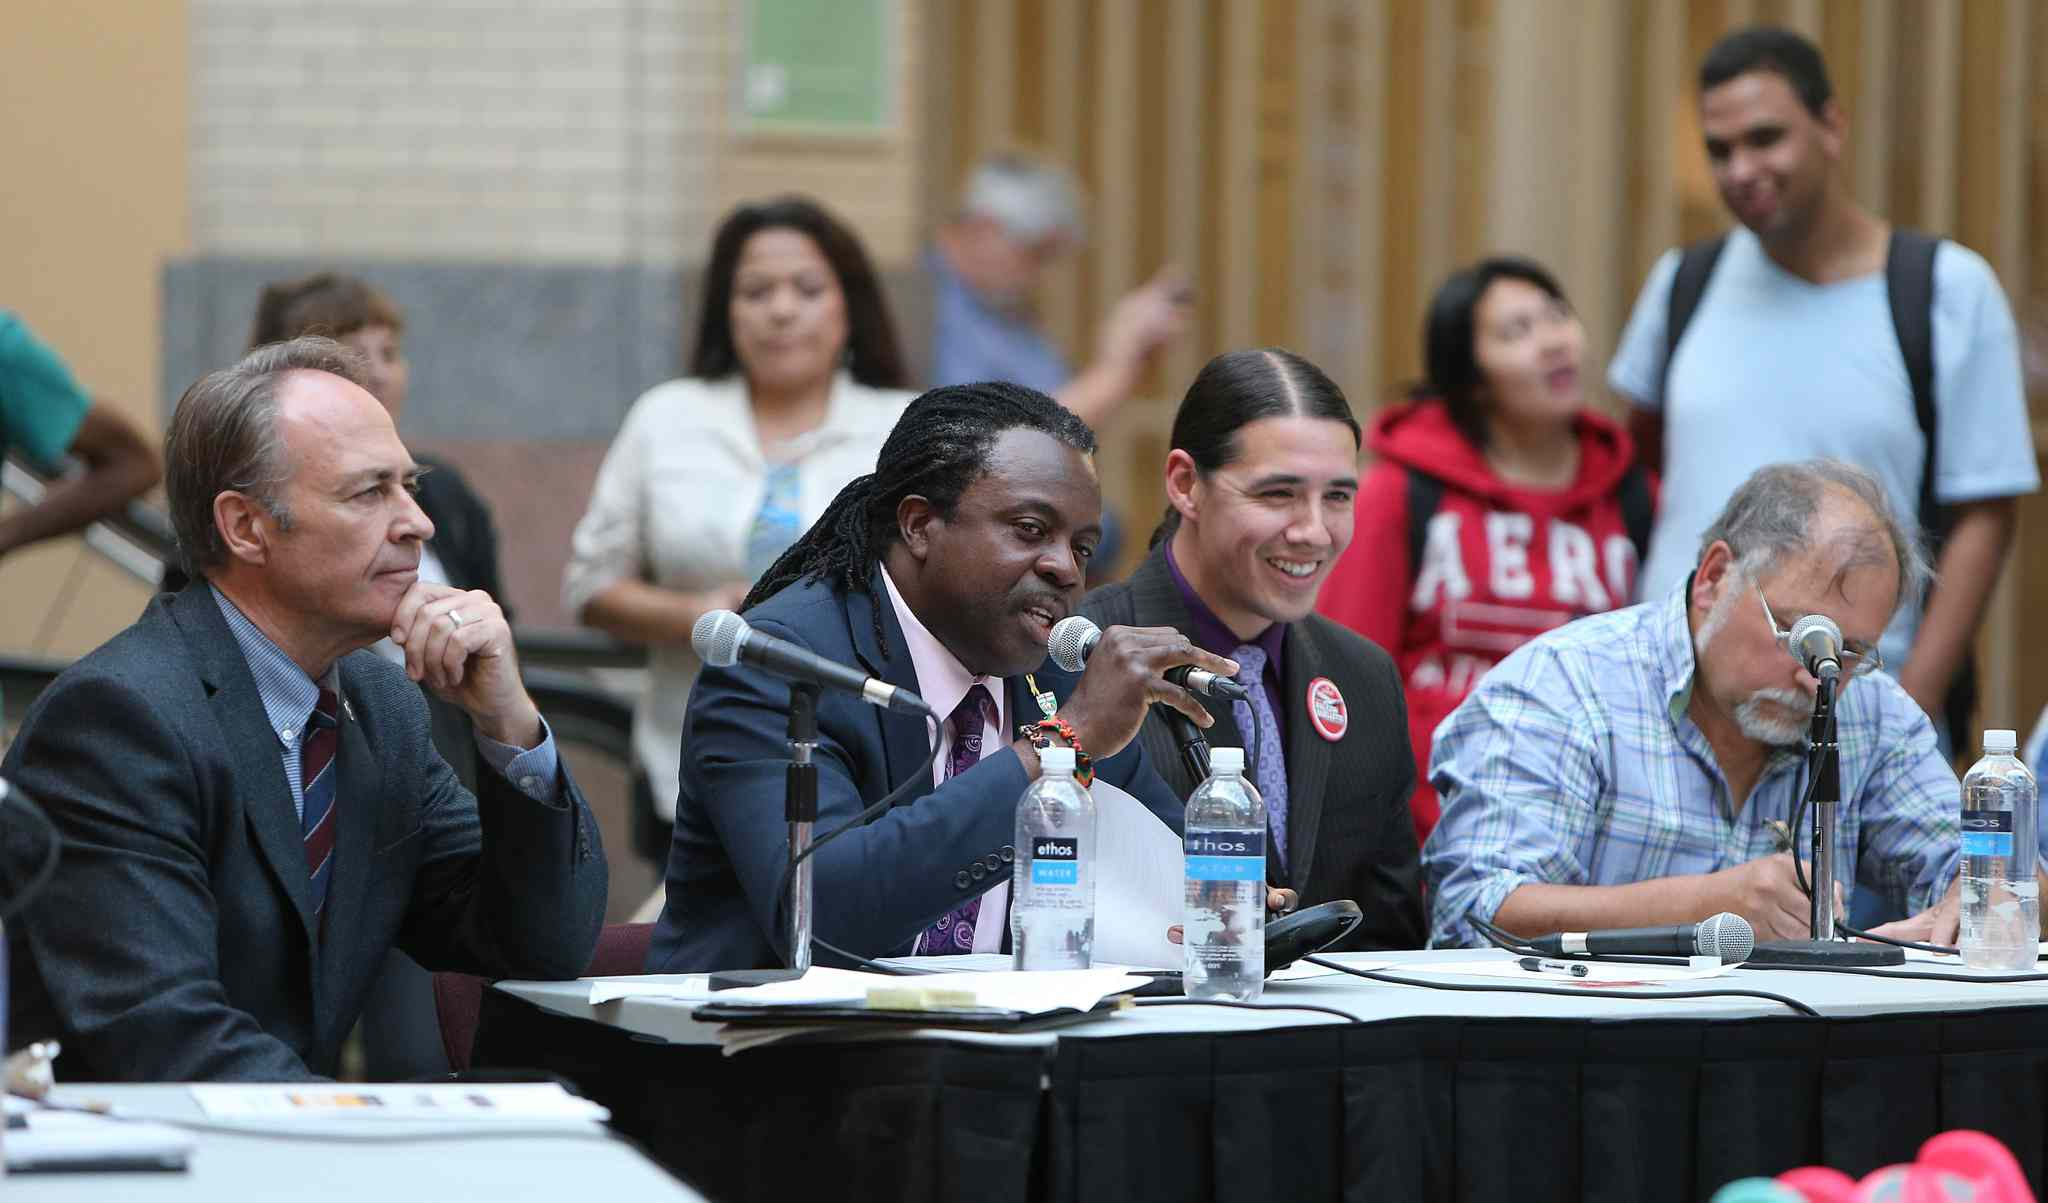 Federal election candidates (from left) Pat Martin (New Democratic Party), Don Woodstock (Green Party), Robert-Falcon Ouellette (Liberal Party) and Darrell Rankin (Communist Party) discuss their platforms on key downtown issues at a forum hosted by the Downtown Winnipeg BIZ at Portage Place Shopping Centre on Sept. 16, 2015.